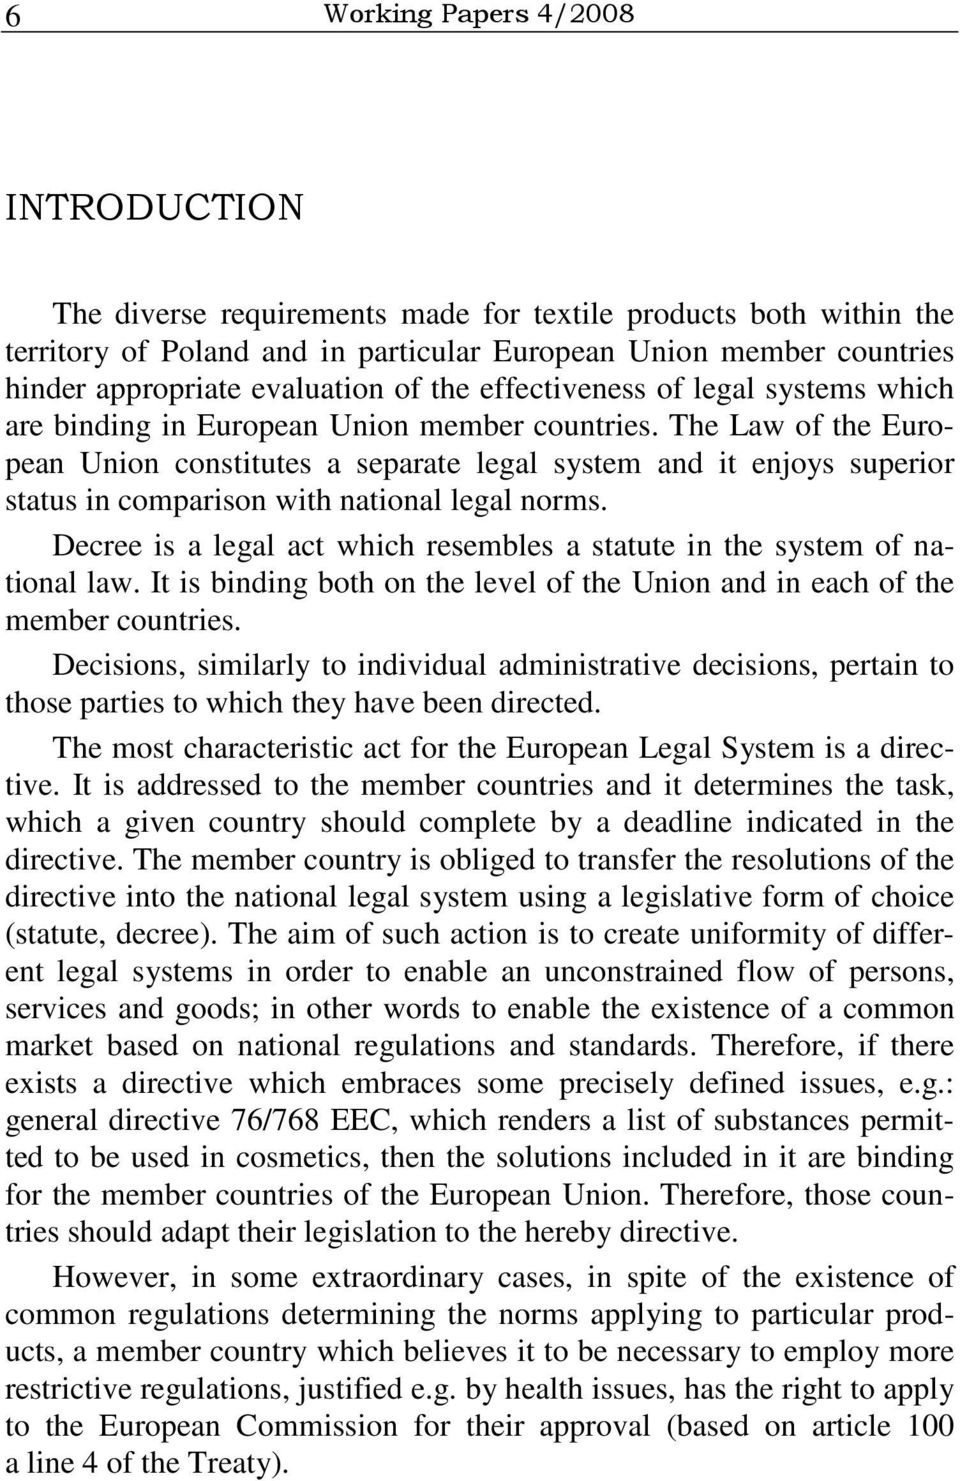 The Law of the European Union constitutes a separate legal system and it enjoys superior status in comparison with national legal norms.